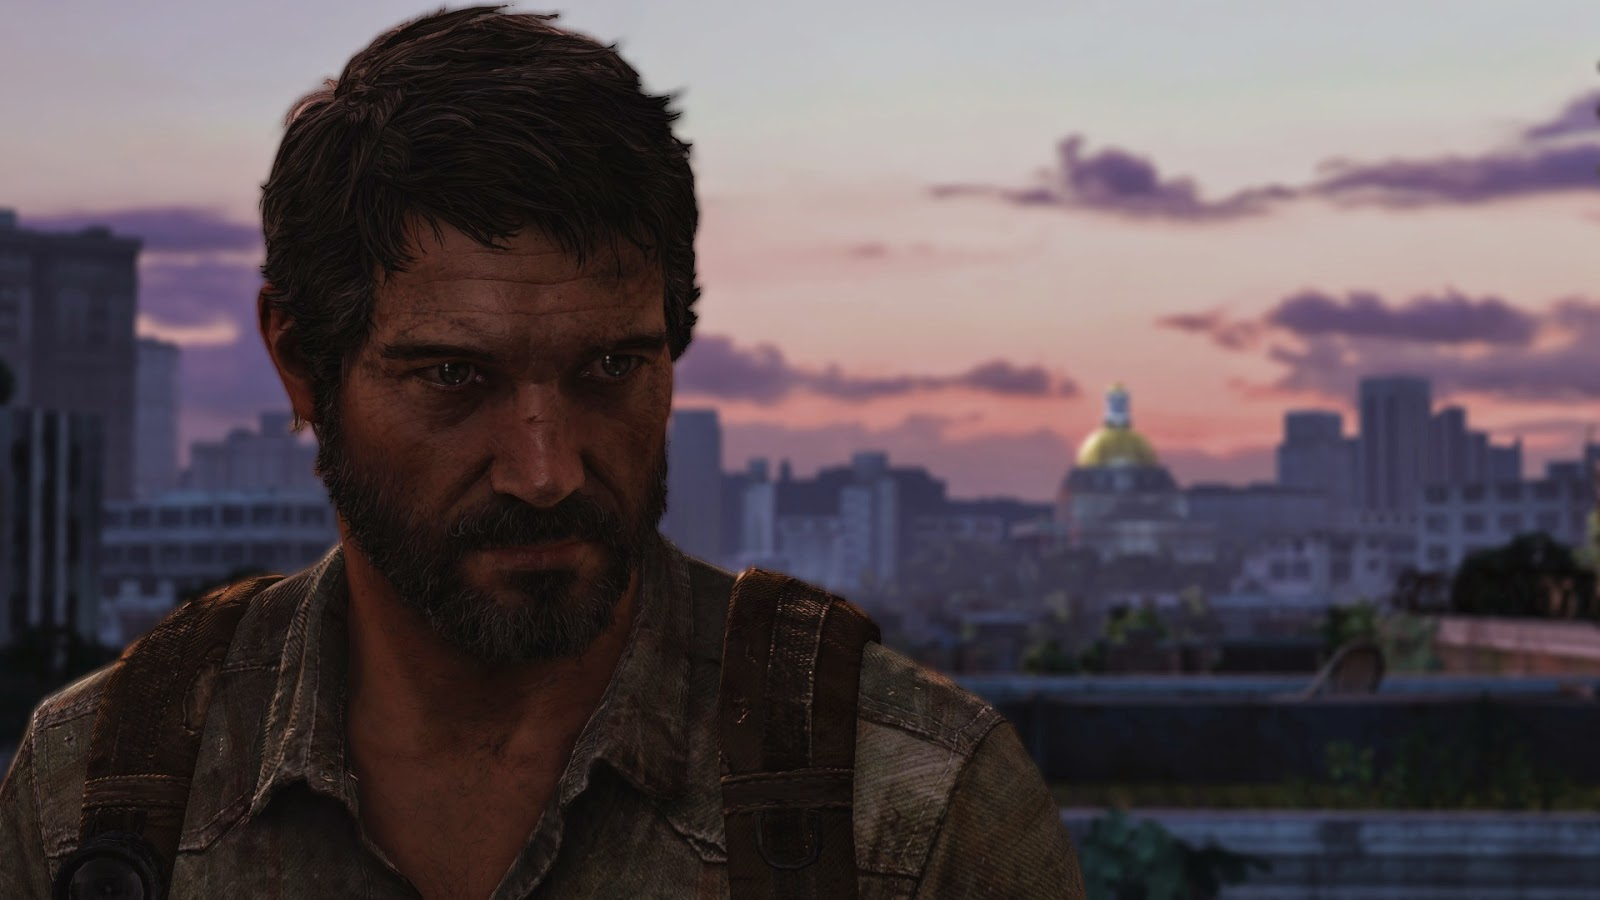 the last of us remastered photo mode pic